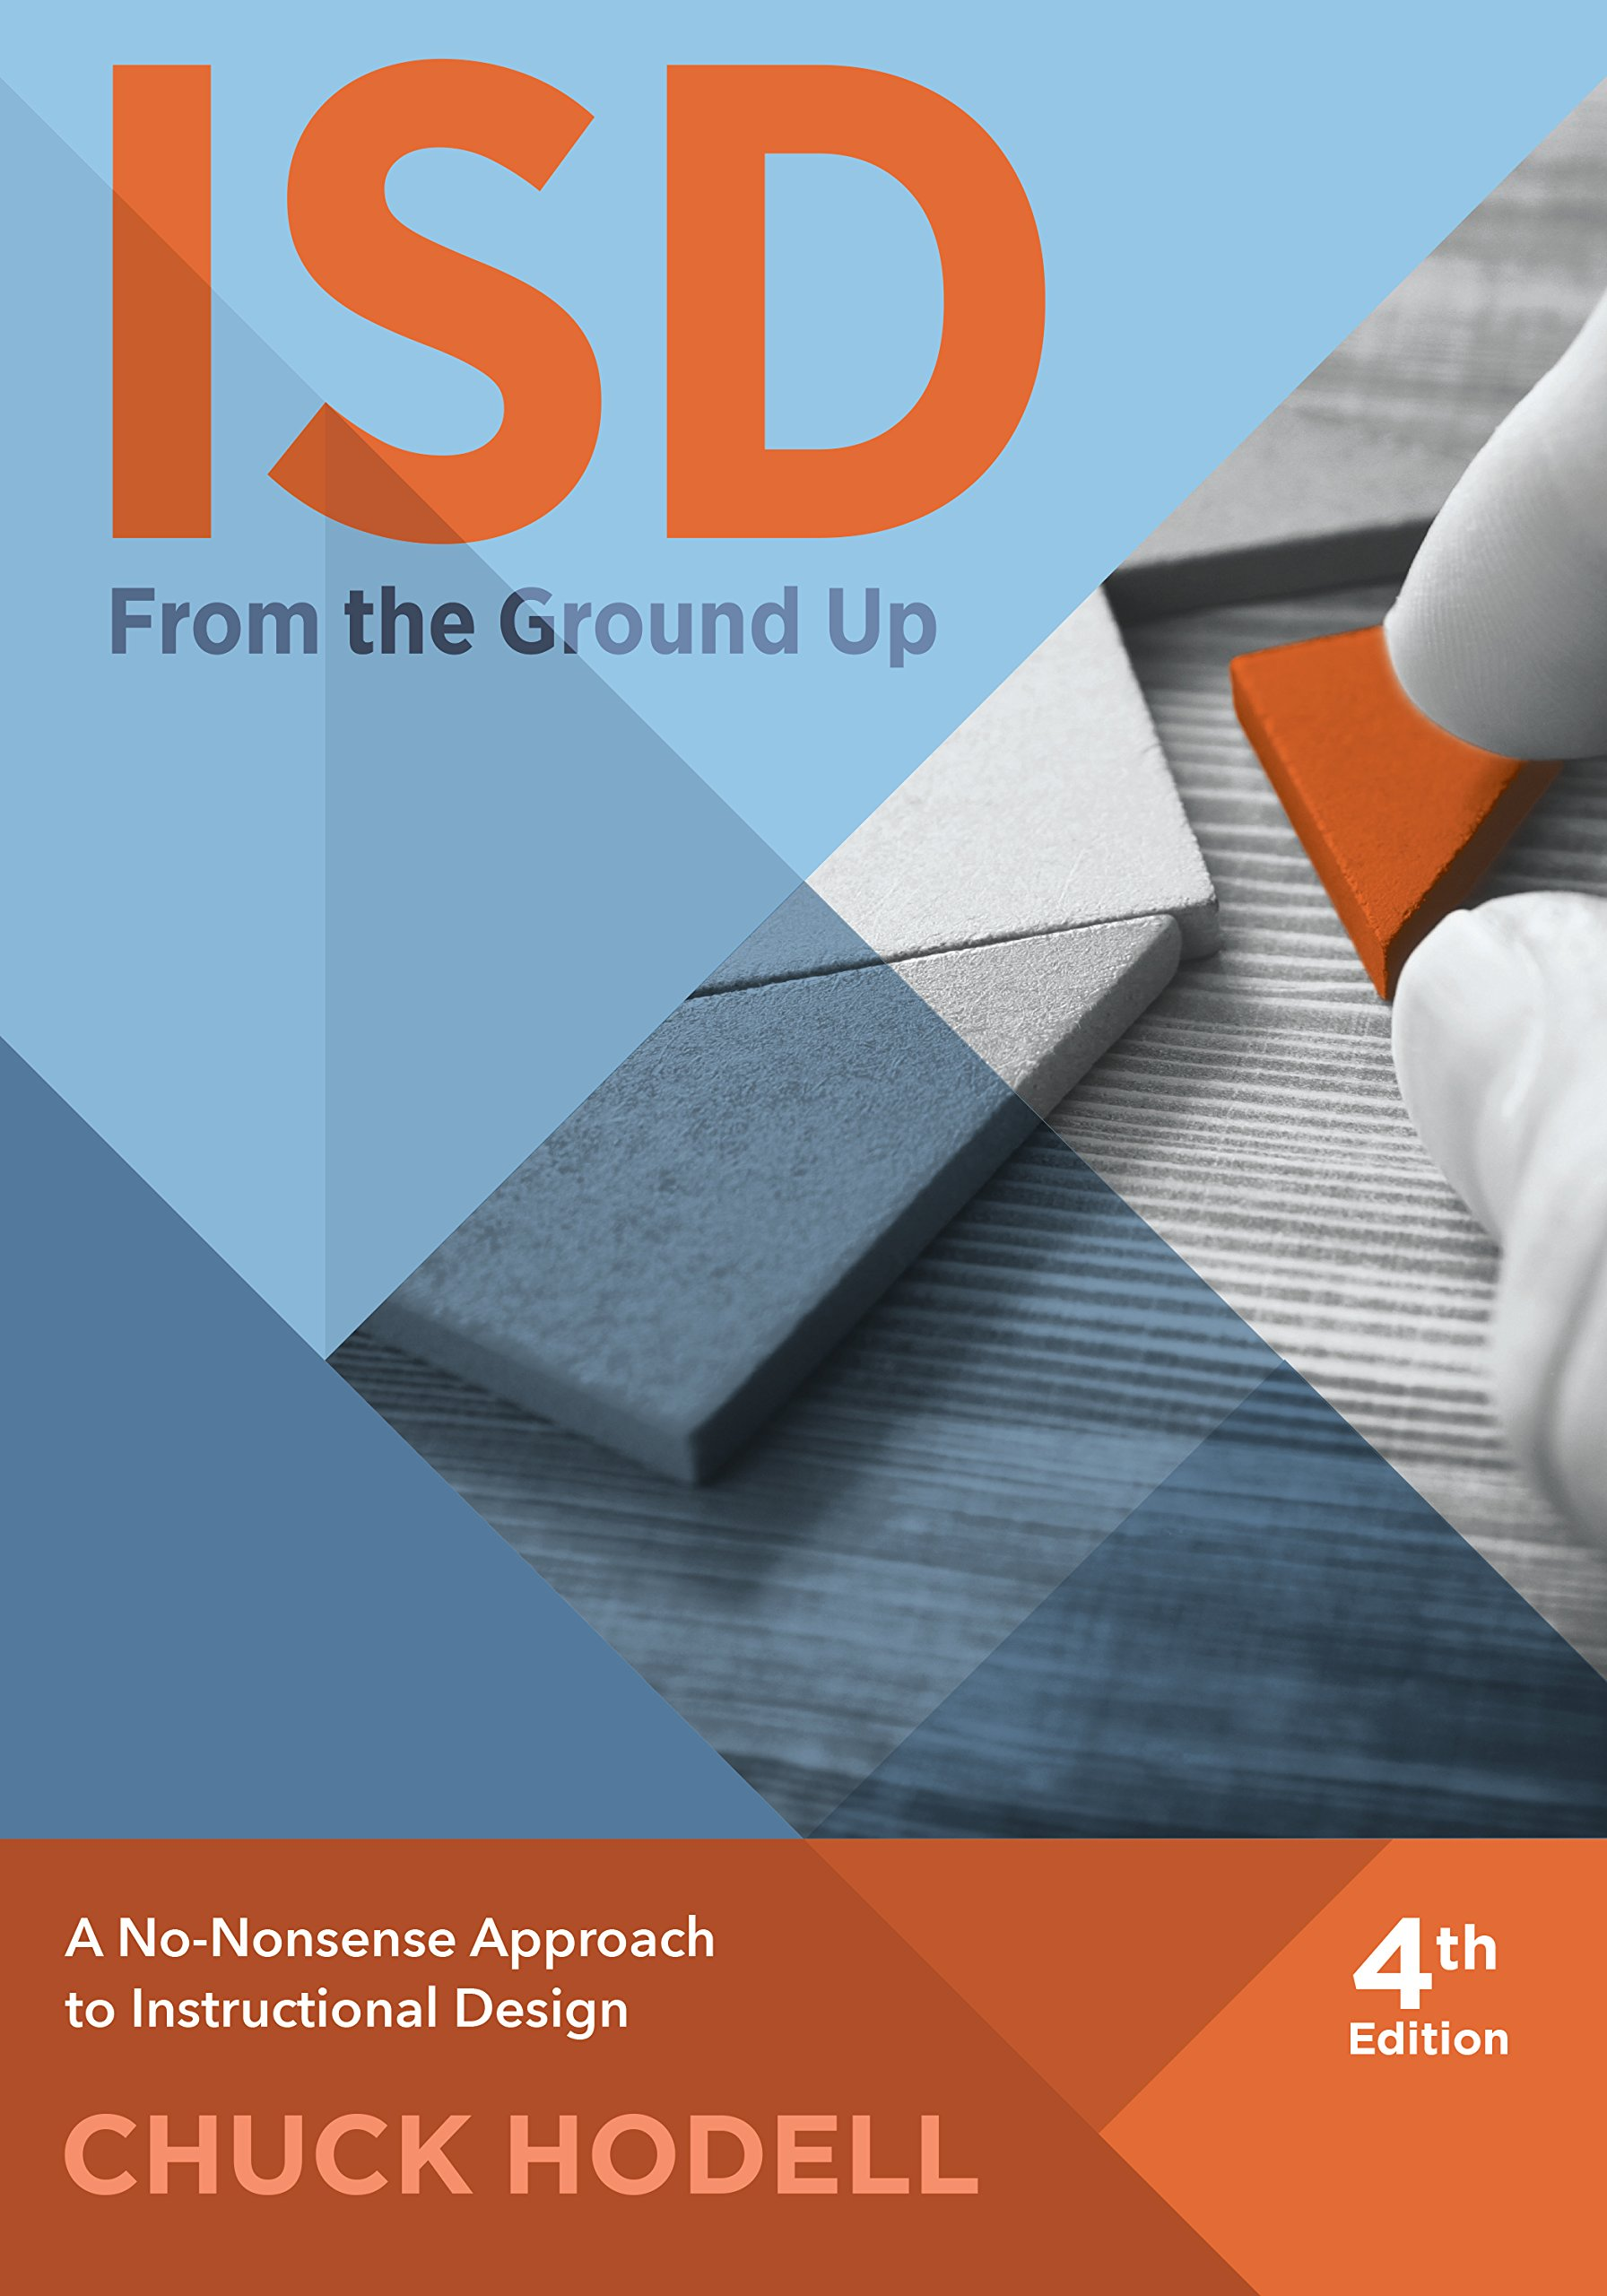 Amazon Com Isd From The Ground Up 4th Edition A No Nonsense Approach To Instructional Design Ebook Hodell Chuck Kindle Store